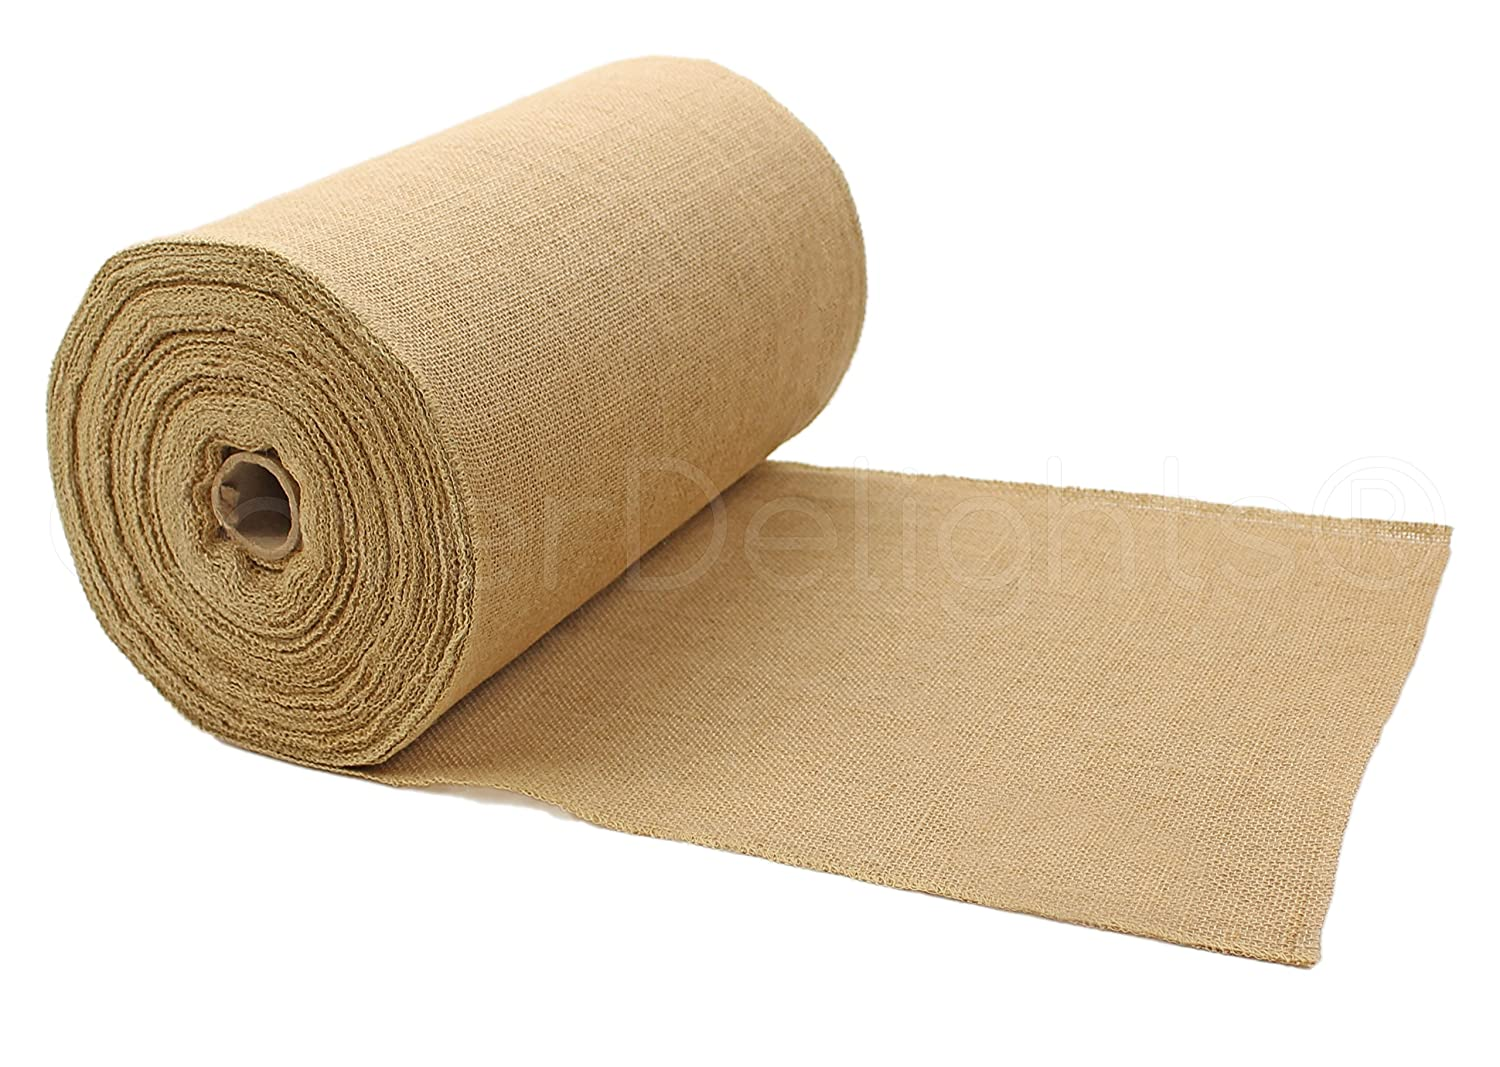 "CleverDelights 14"" Premium Burlap Roll - 50 Yards - No-Fray Finished Edges - Natural Jute Burlap Fabric"